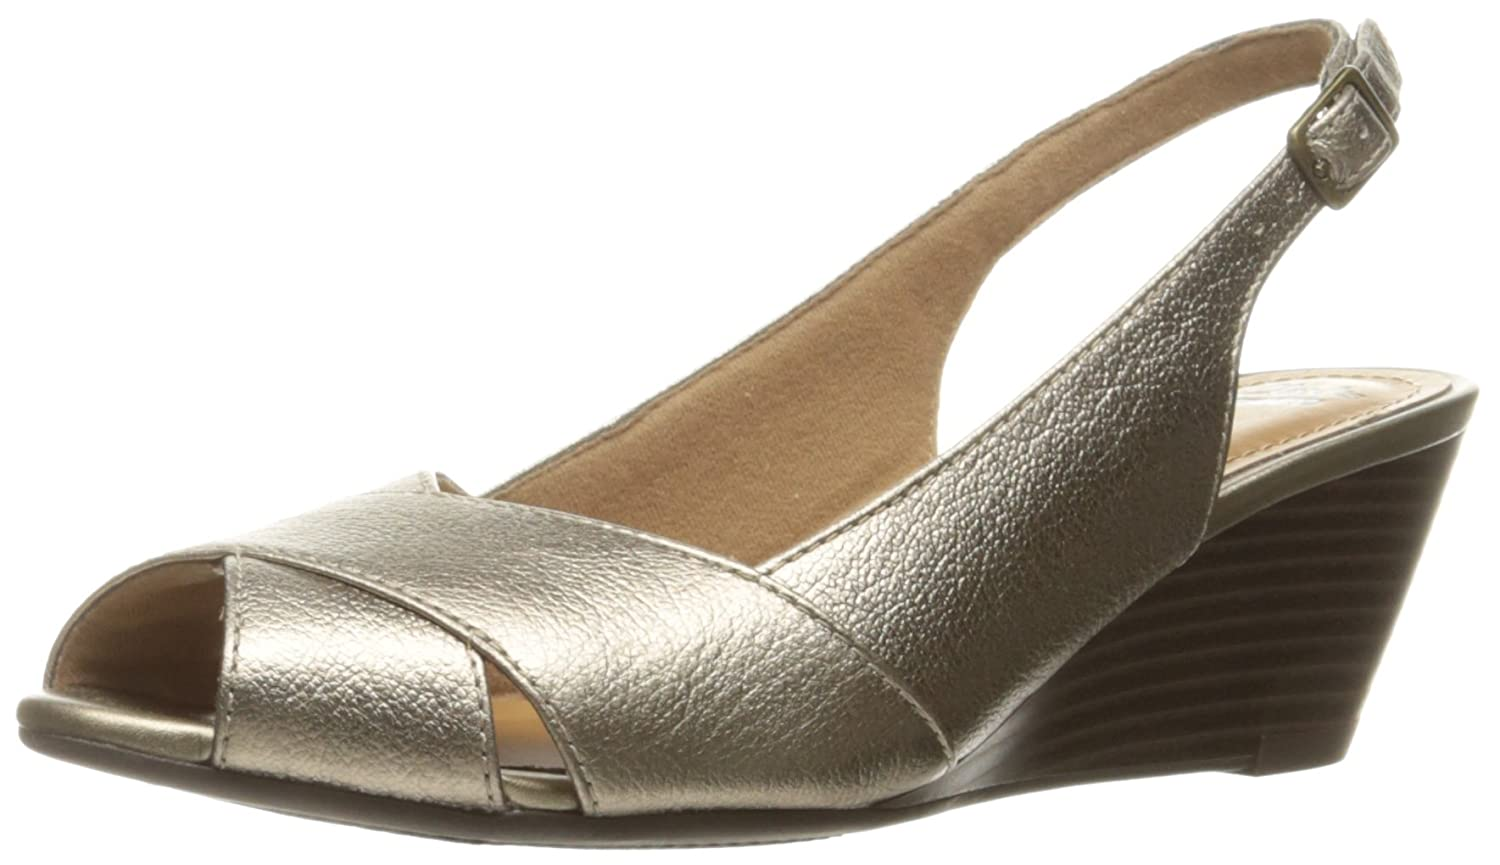 CLARKS Women's Brielle Kae Wedge Pump B01G4SR09K 10 W US|Metallic Leather